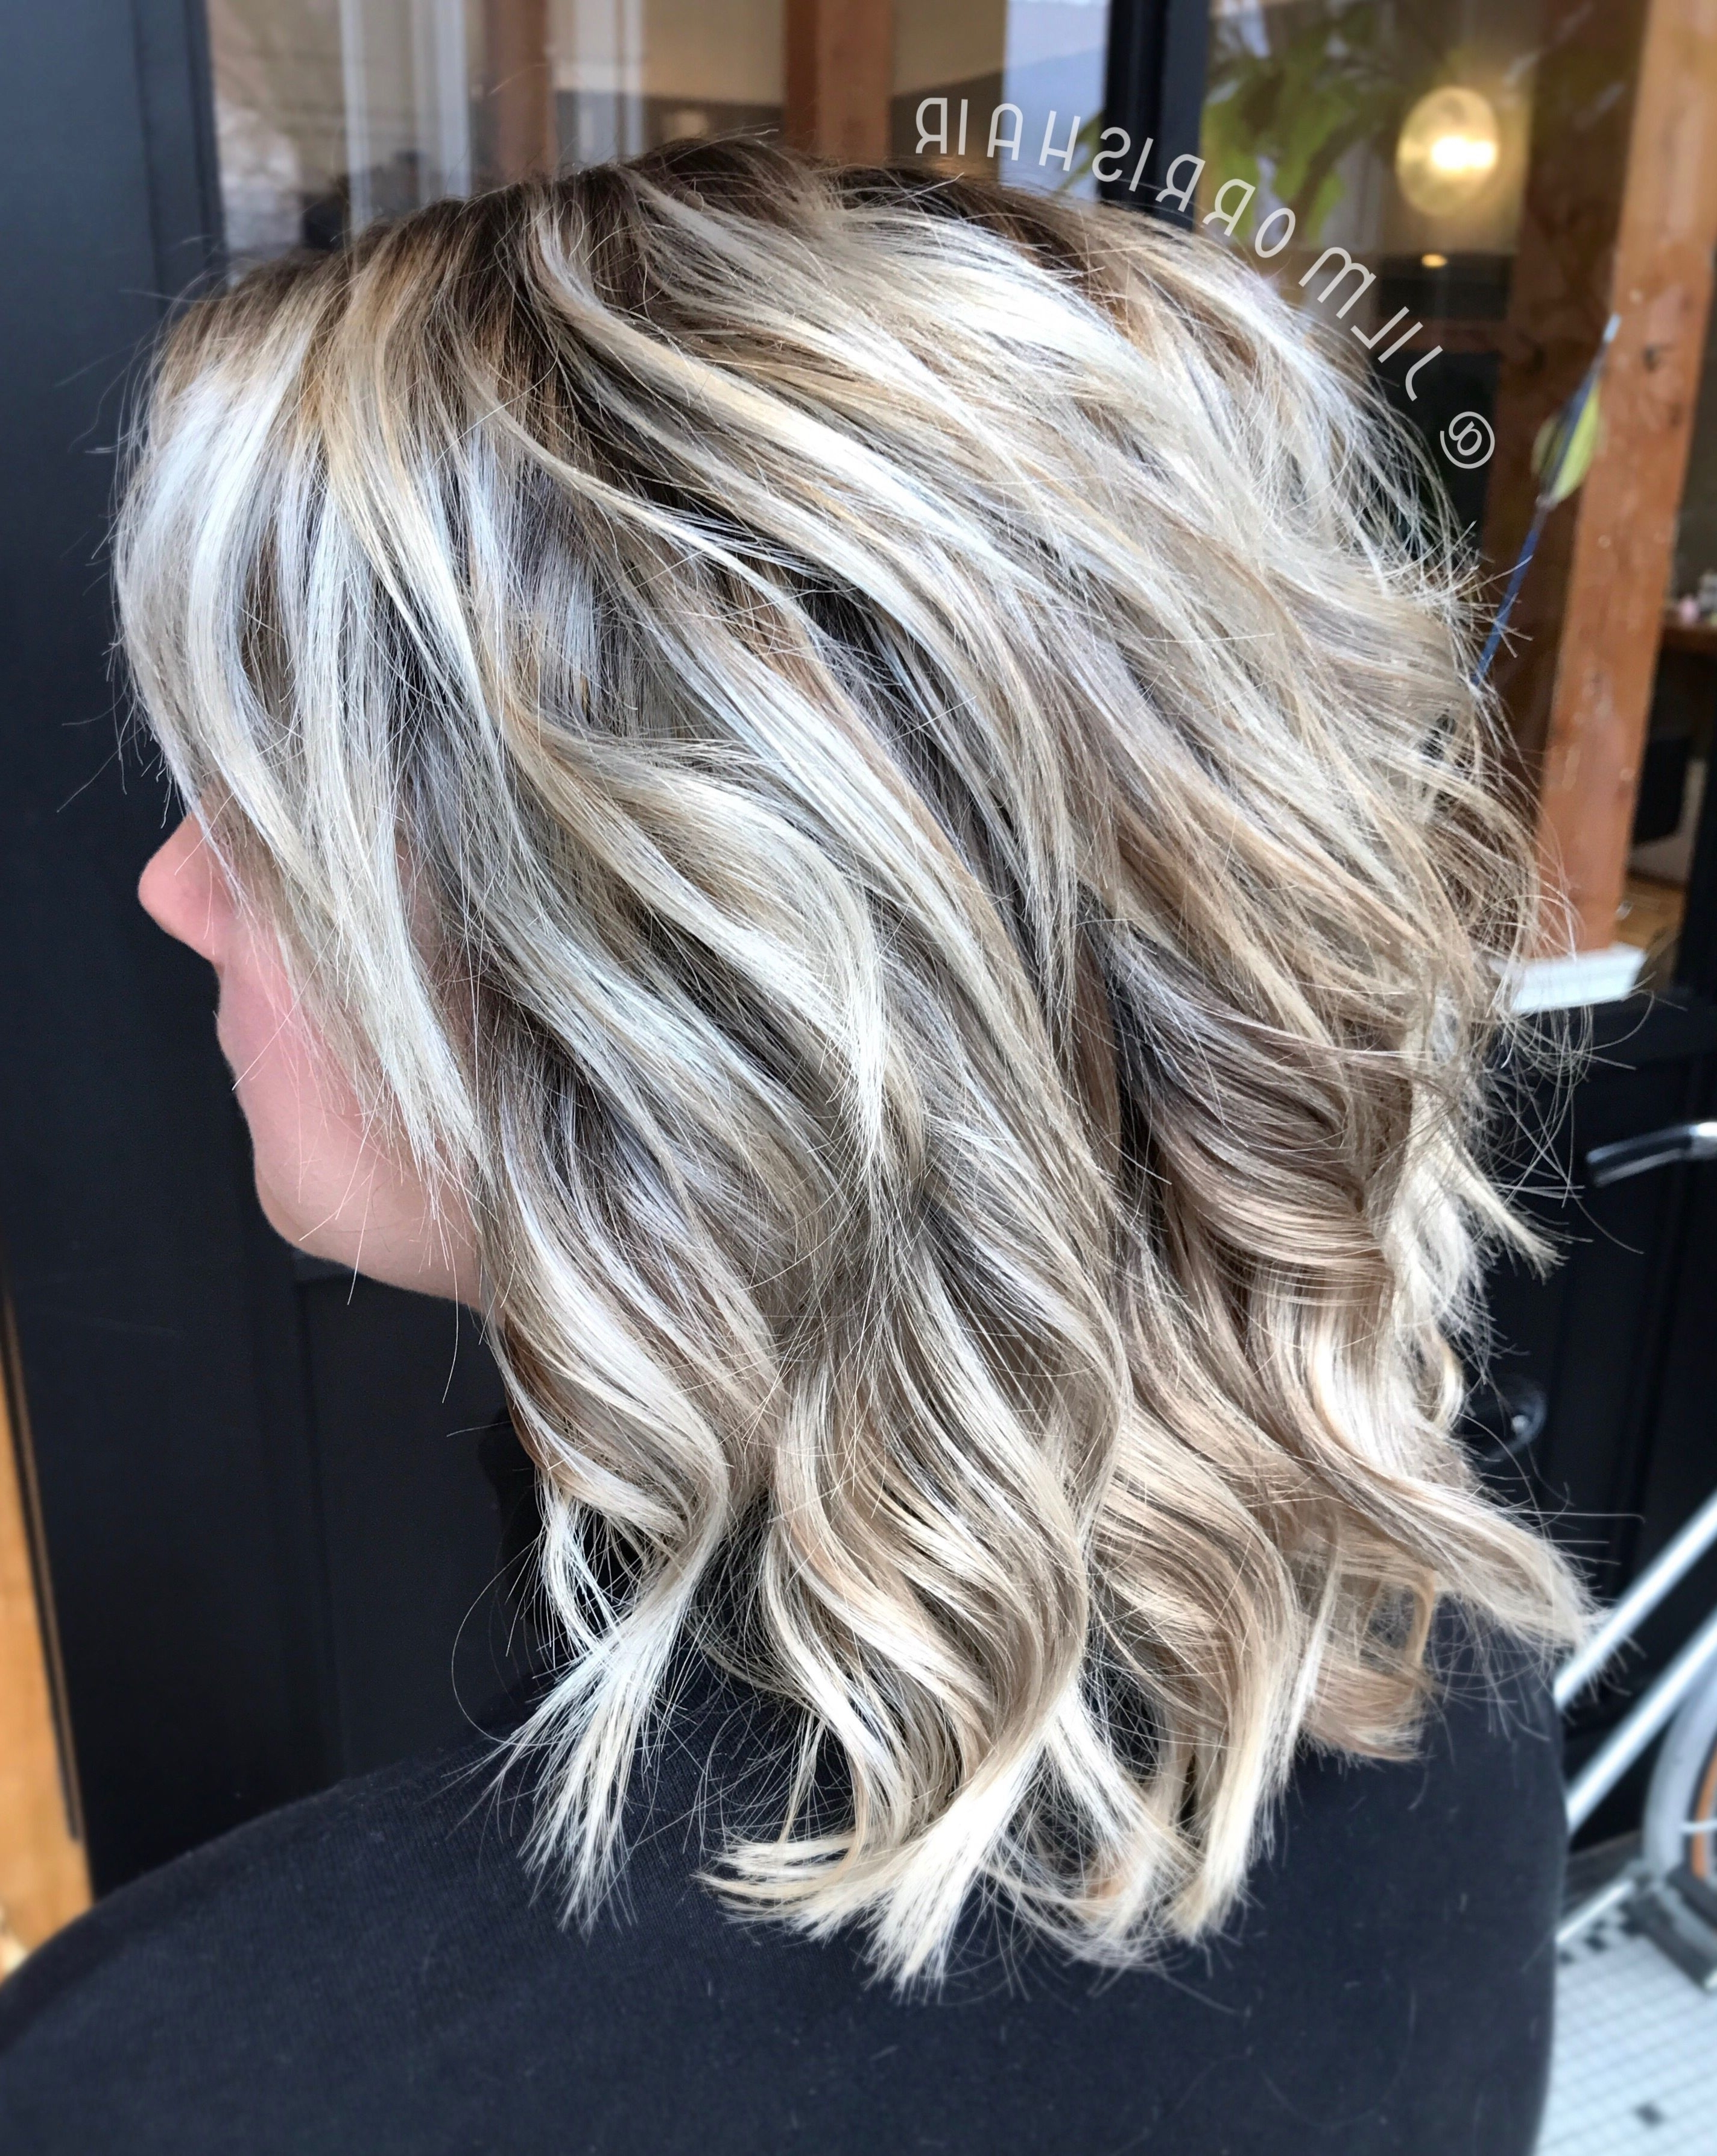 Well Liked Long Bob Blonde Hairstyles With Lowlights With Regard To Icy White Balayage Blonde Highlights With An Ashy Shadow Root (Gallery 3 of 20)